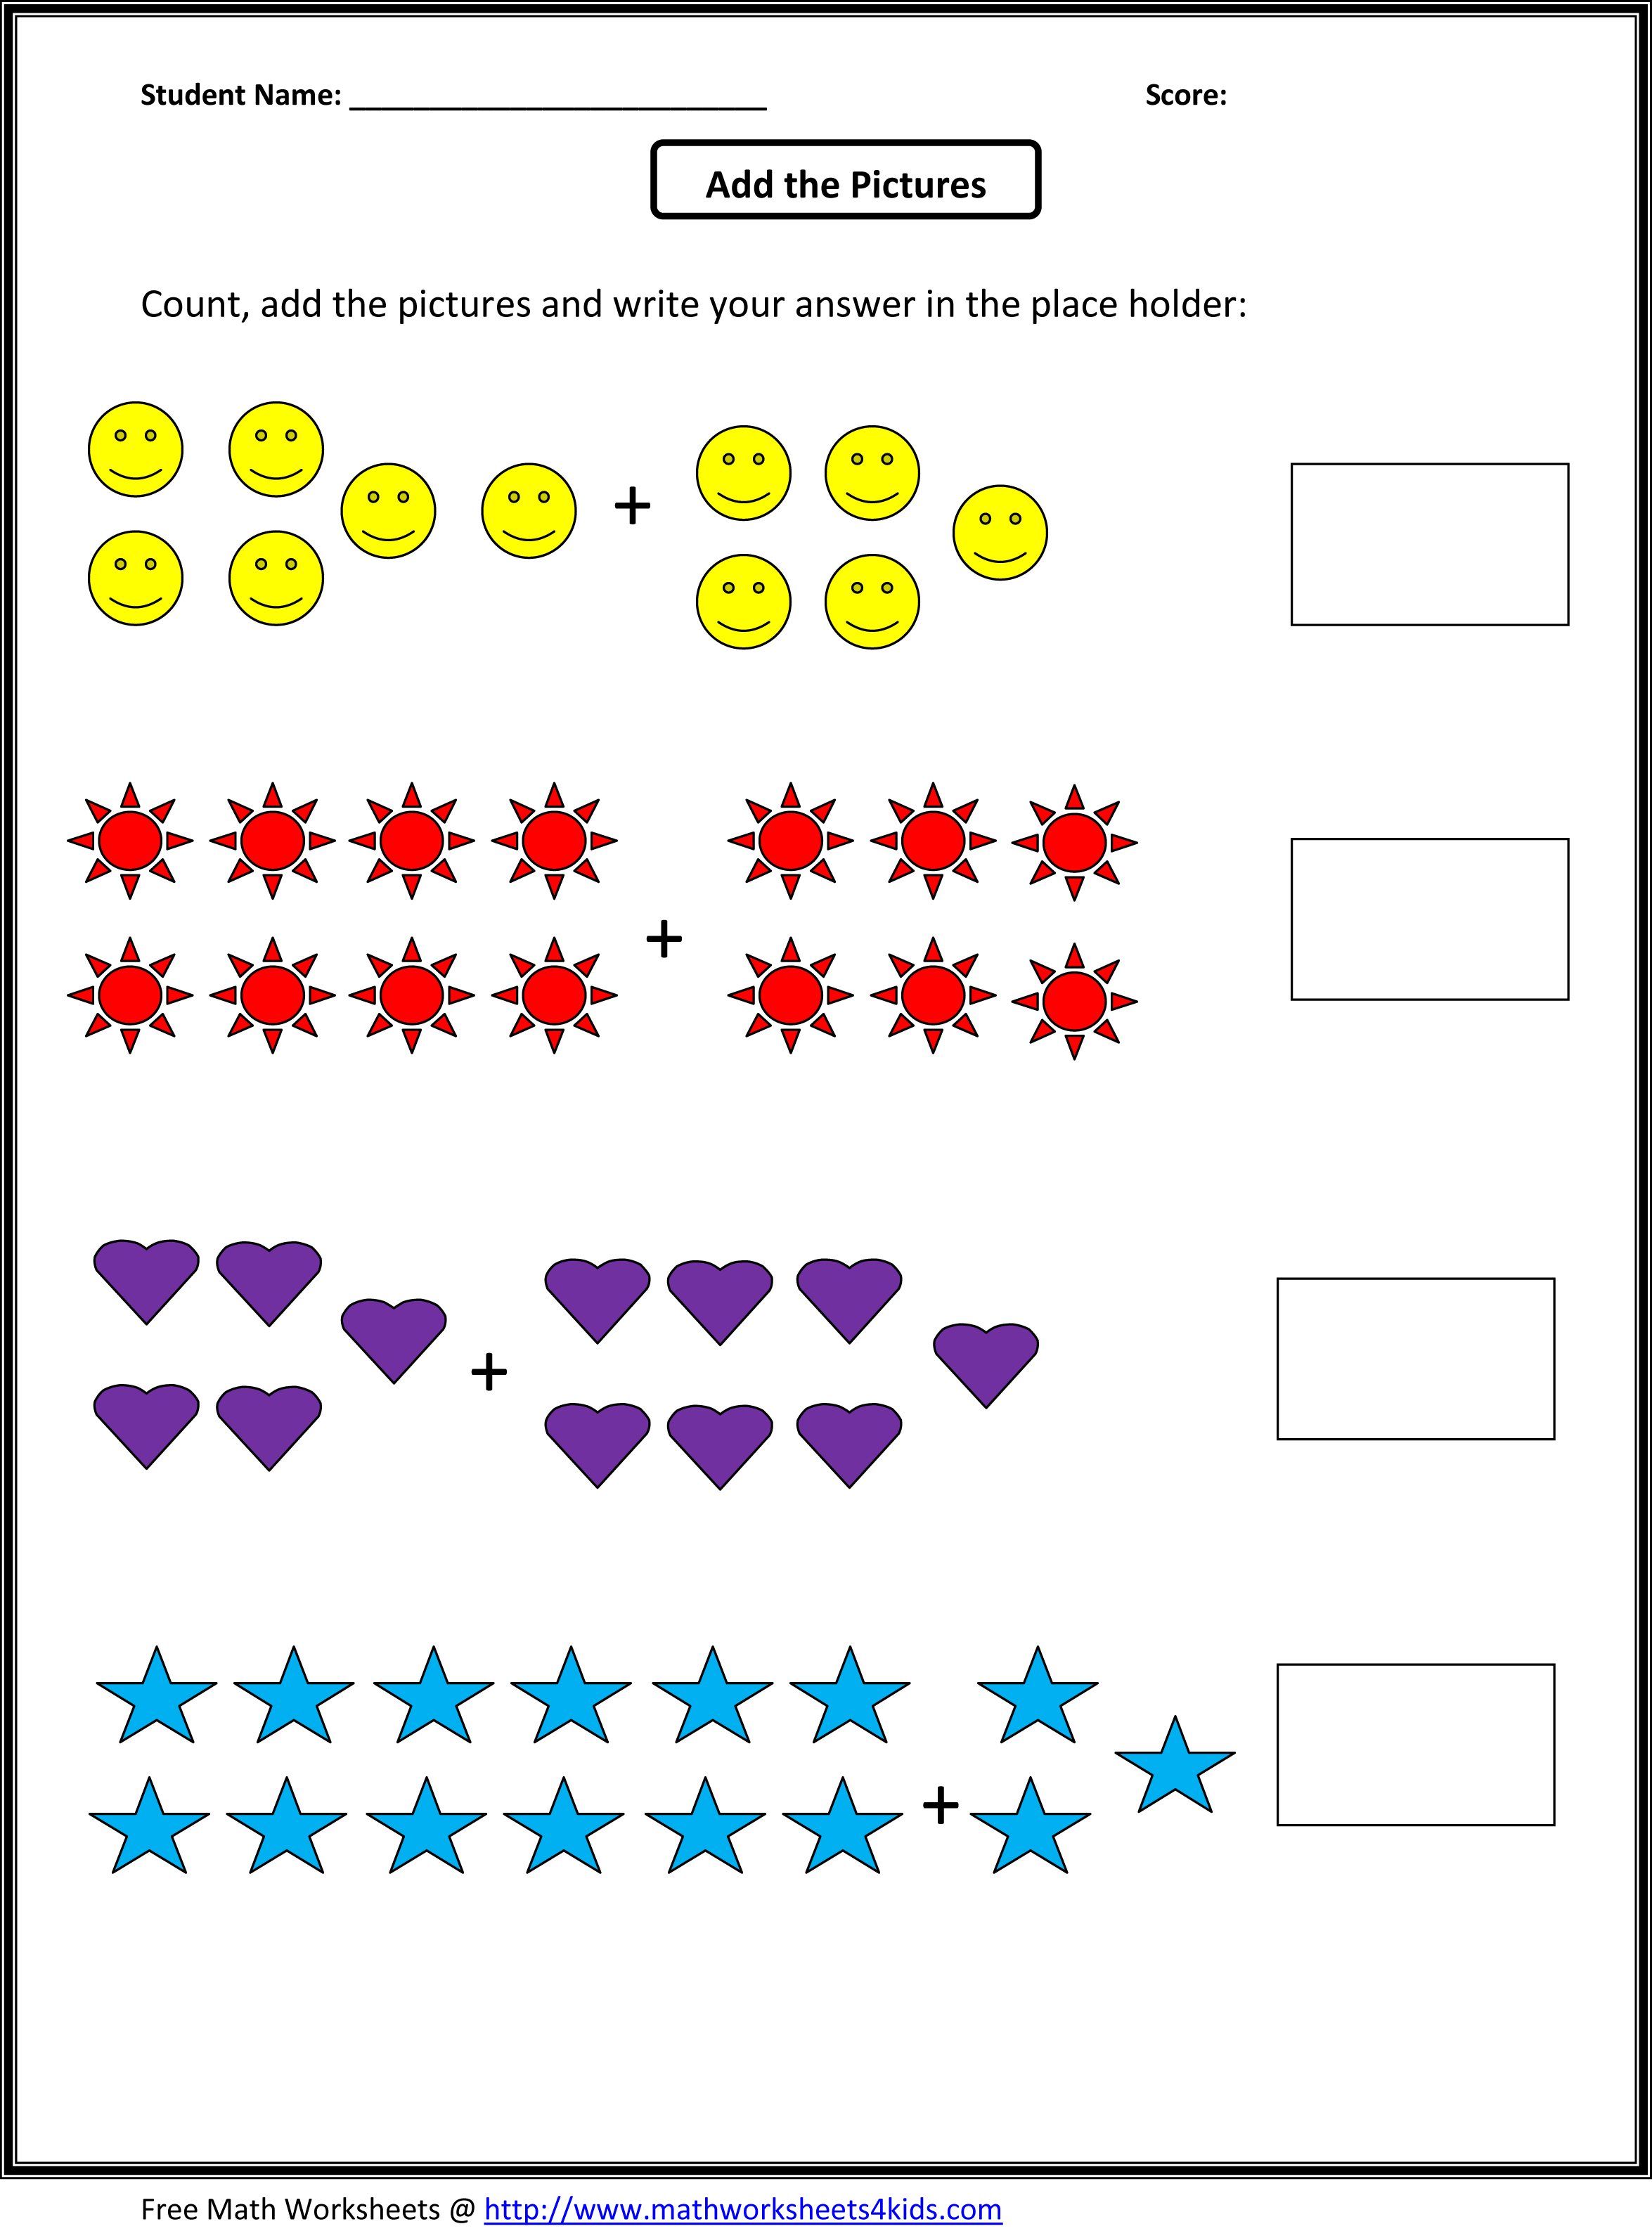 Weirdmailus  Gorgeous Grade  Maths Worksheet  Reocurent With Heavenly Math Worksheets For St Grade Free  Reocurent With Endearing Year  Comprehension Worksheets Free Also Hindi Grammar Worksheet In Addition Mental Maths Worksheets Year  And Change In Matter Worksheet As Well As The Good Samaritan Worksheets Additionally Gcse Physics Worksheets From Reocurentcom With Weirdmailus  Heavenly Grade  Maths Worksheet  Reocurent With Endearing Math Worksheets For St Grade Free  Reocurent And Gorgeous Year  Comprehension Worksheets Free Also Hindi Grammar Worksheet In Addition Mental Maths Worksheets Year  From Reocurentcom